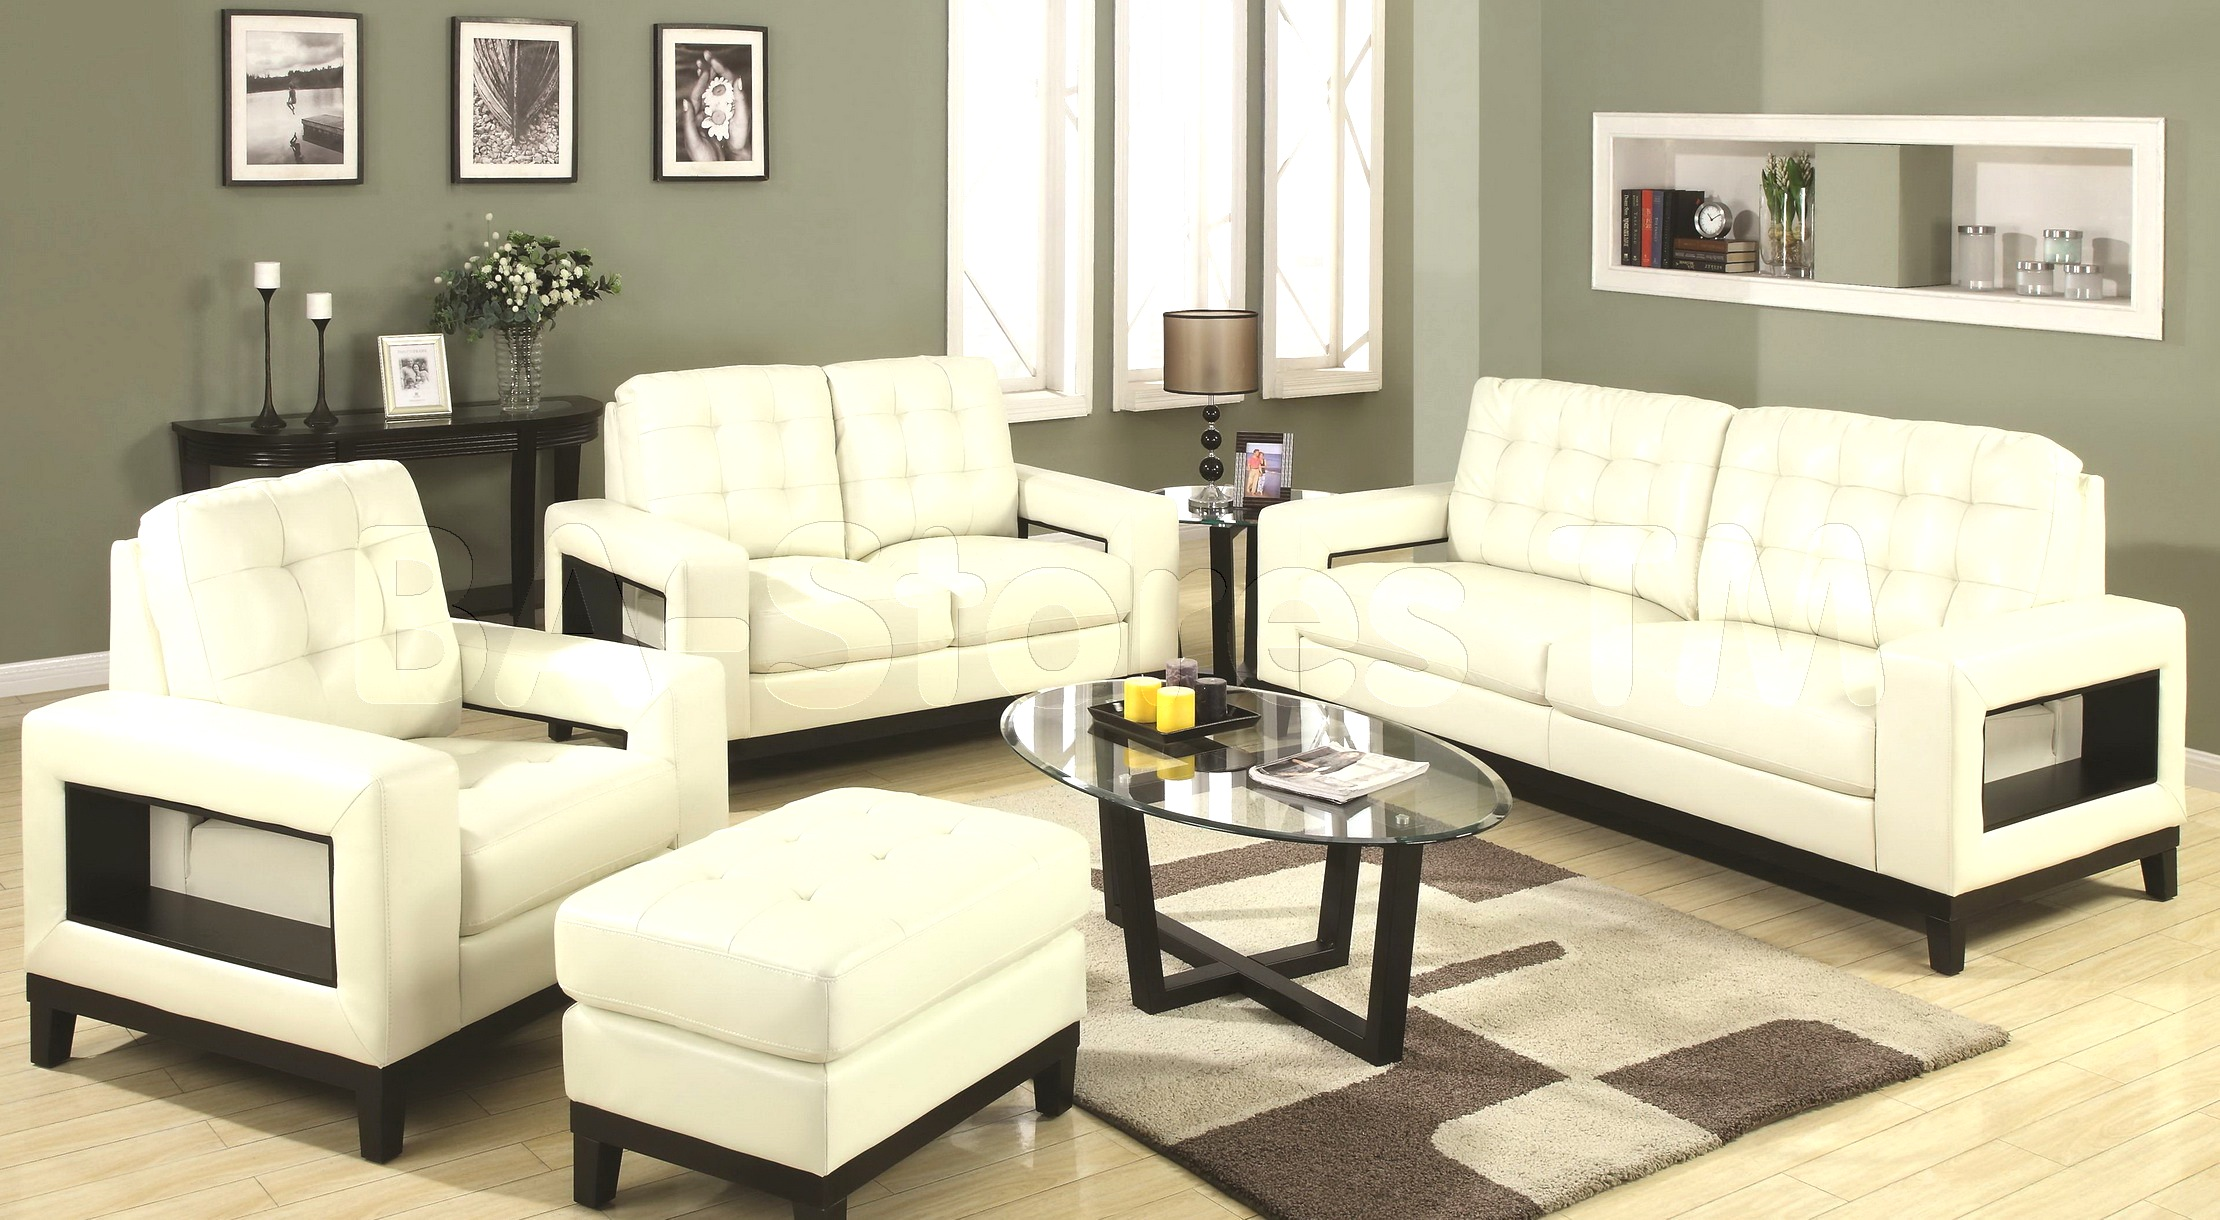 25 Latest Sofa Set Designs for Living Room Furniture Ideas - HGNV.COM